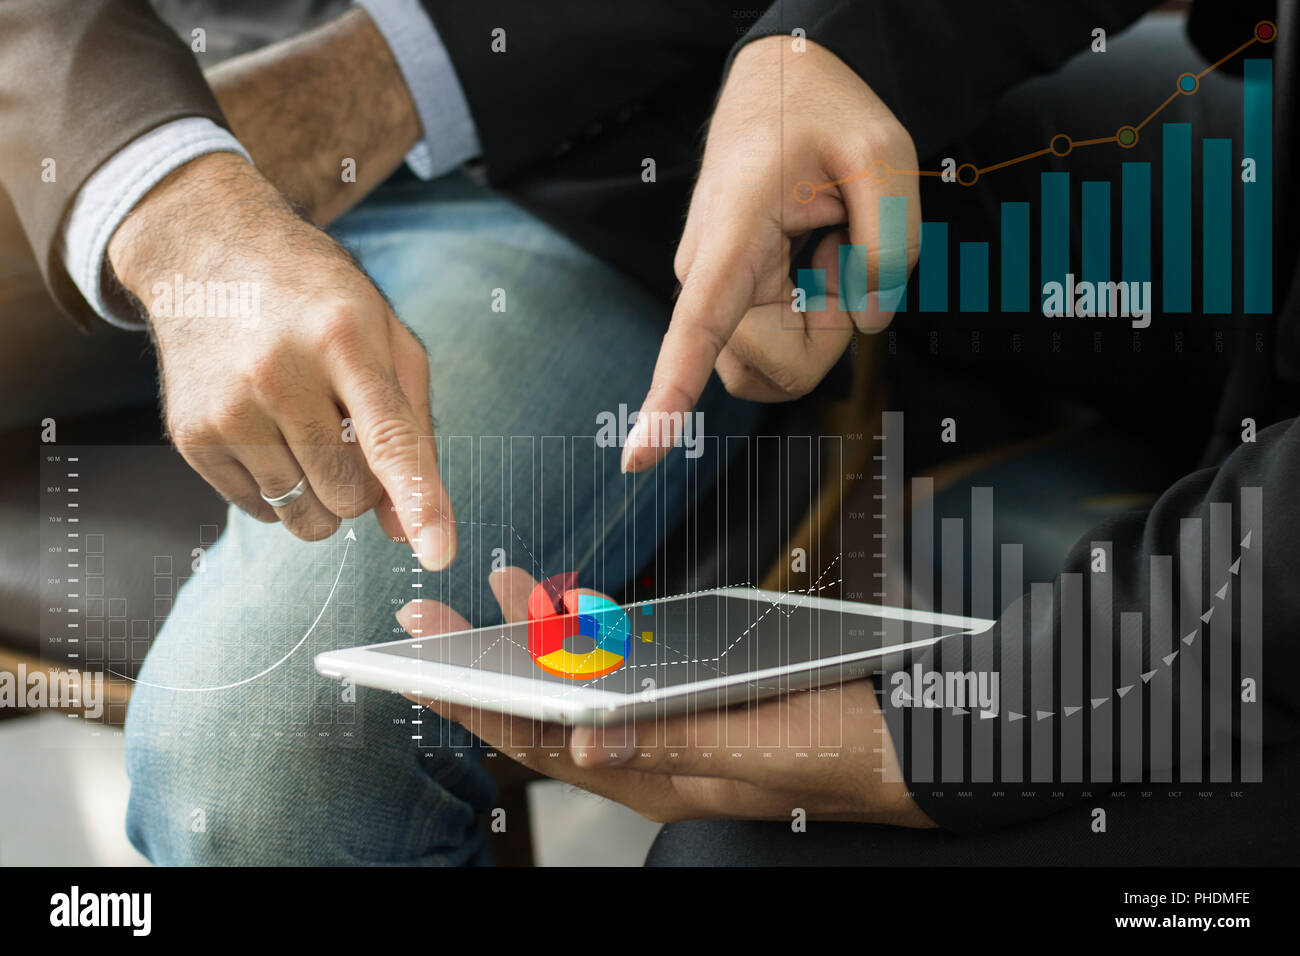 group of business people discussing about finance of capital banking and pointing at tablet. - Stock Image